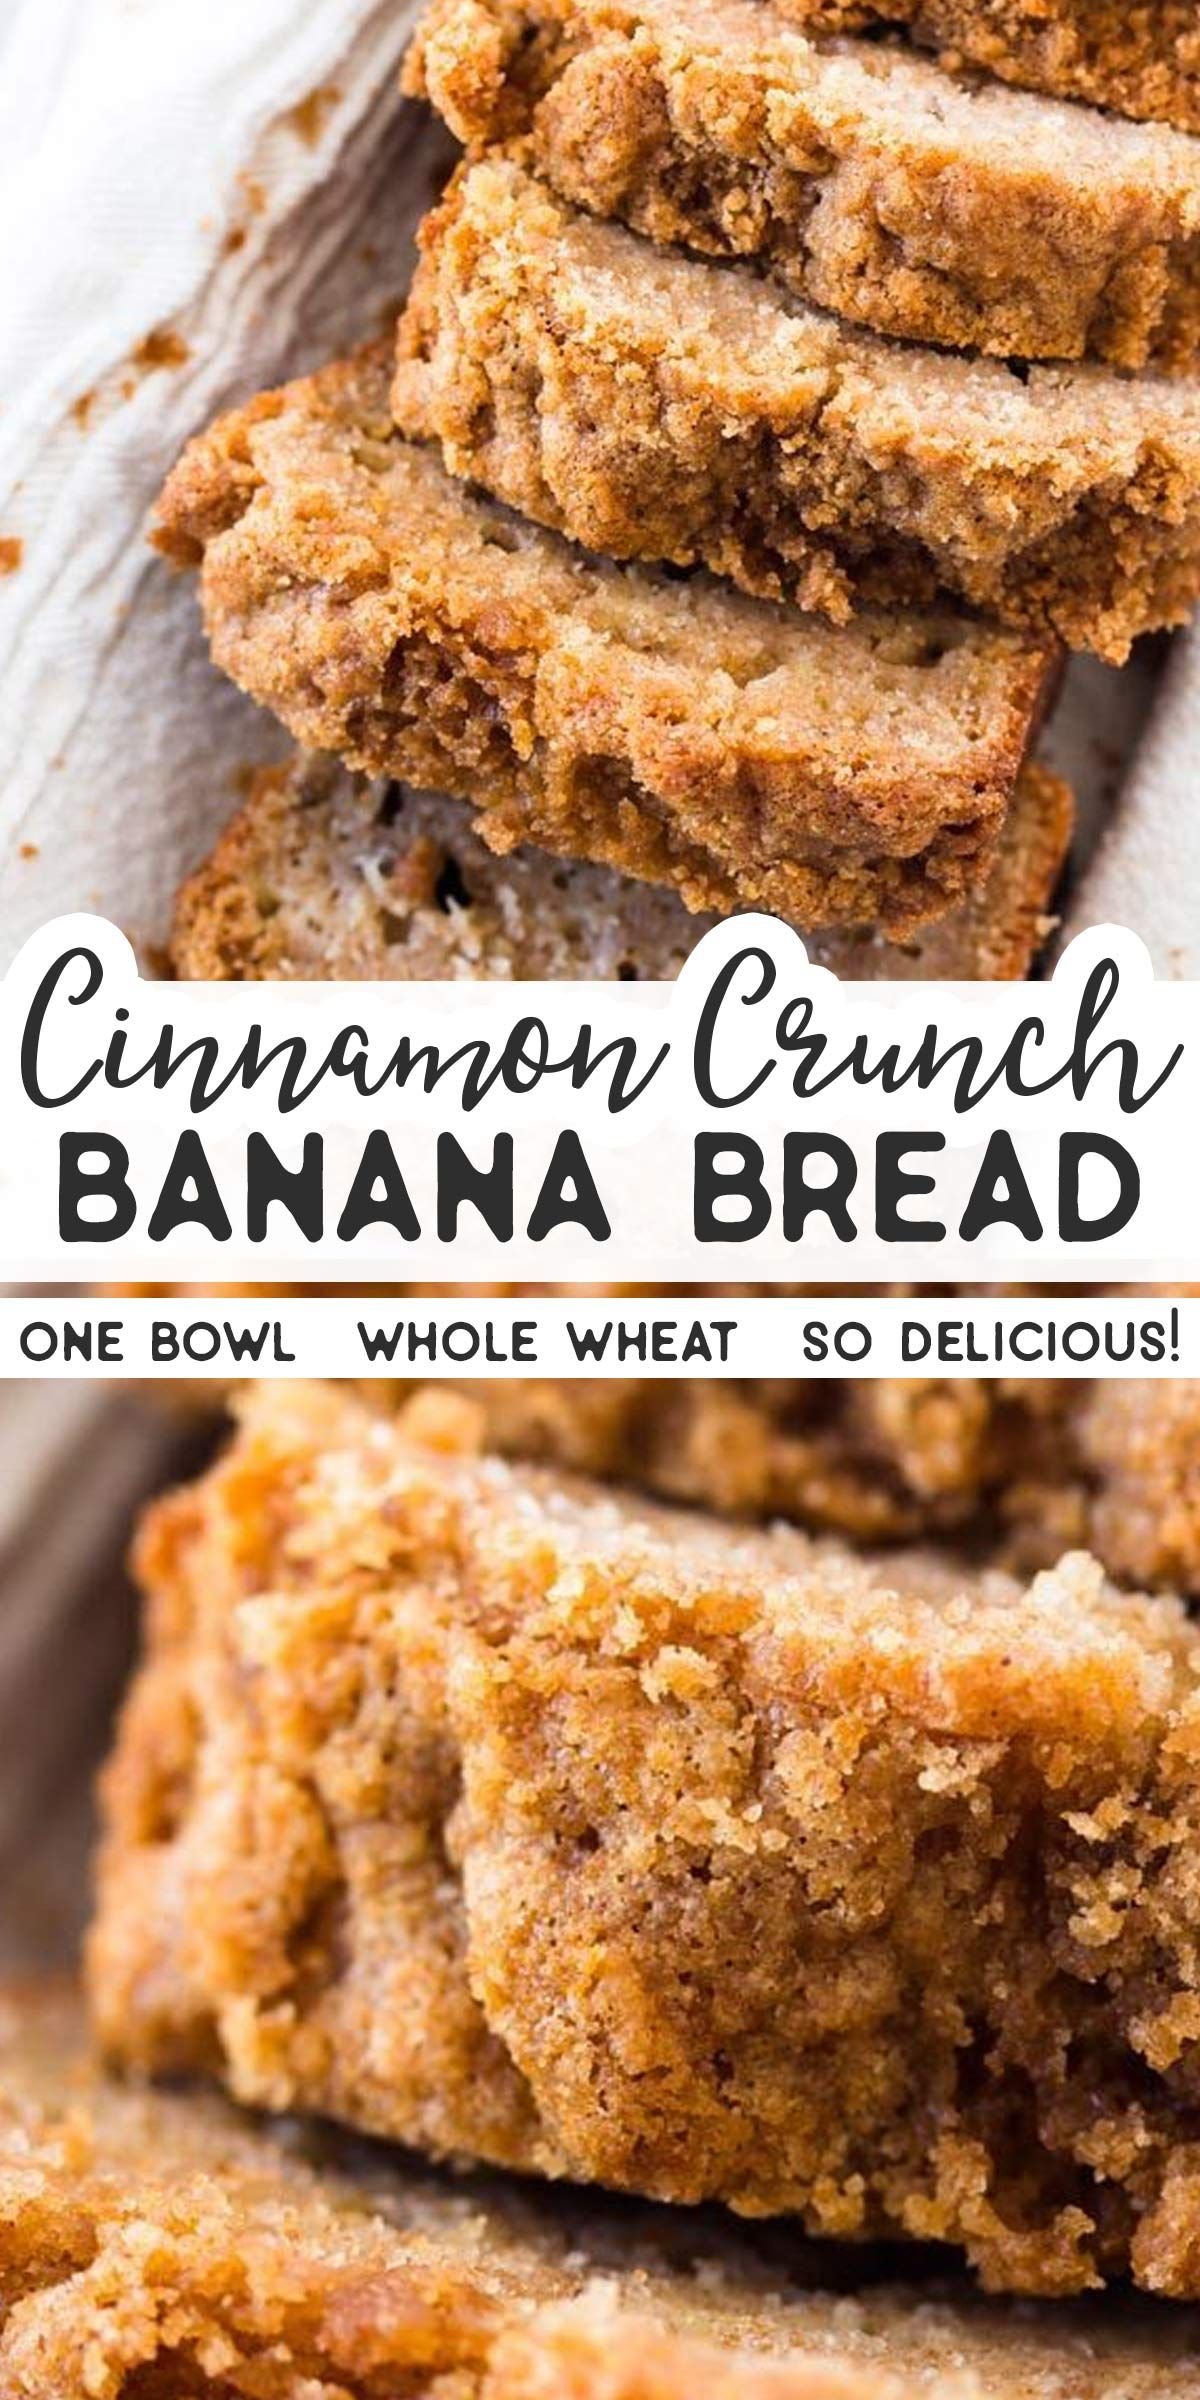 Photo of Cinnamon Crunch Banana Bread